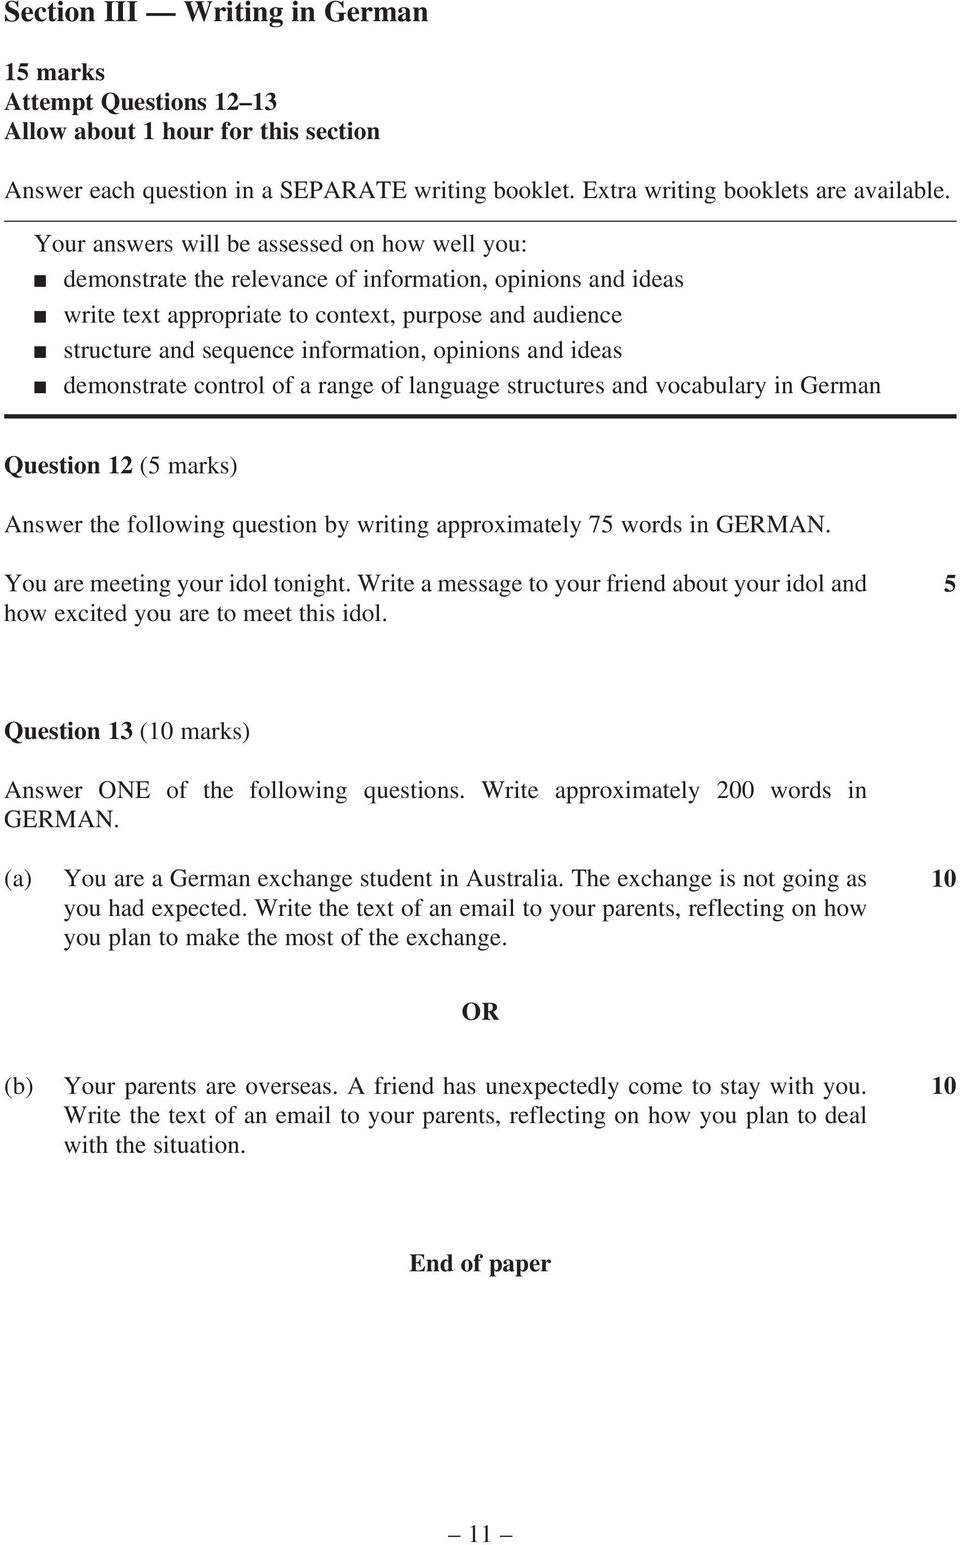 information, opinions and ideas n demonstrate control of a range of language structures and vocabulary in German Question 12 (5 marks) Answer the following question by writing approximately 75 words